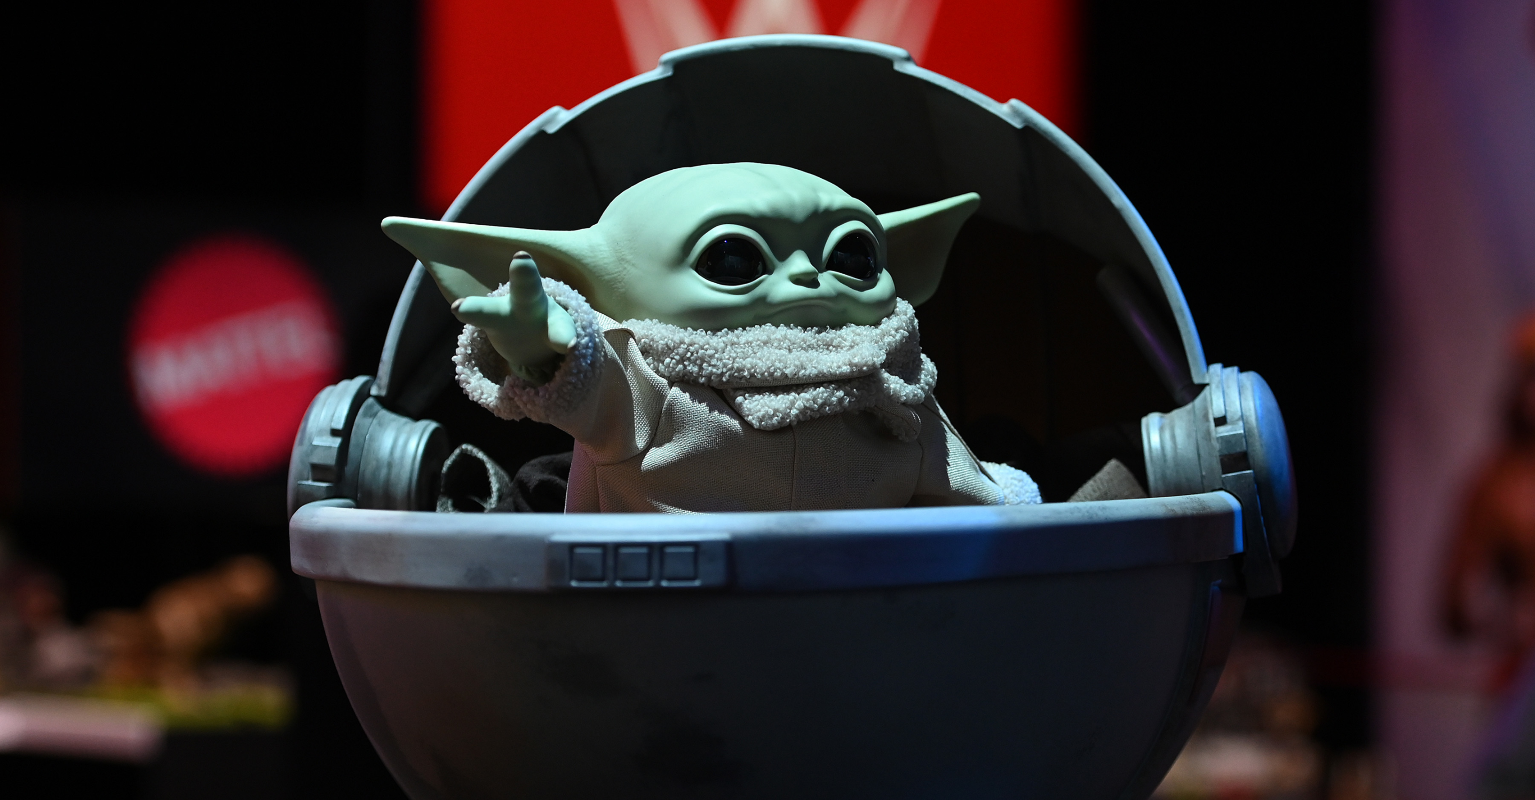 Baby Yoda is officially a part of the Space X crew in the International Space Station